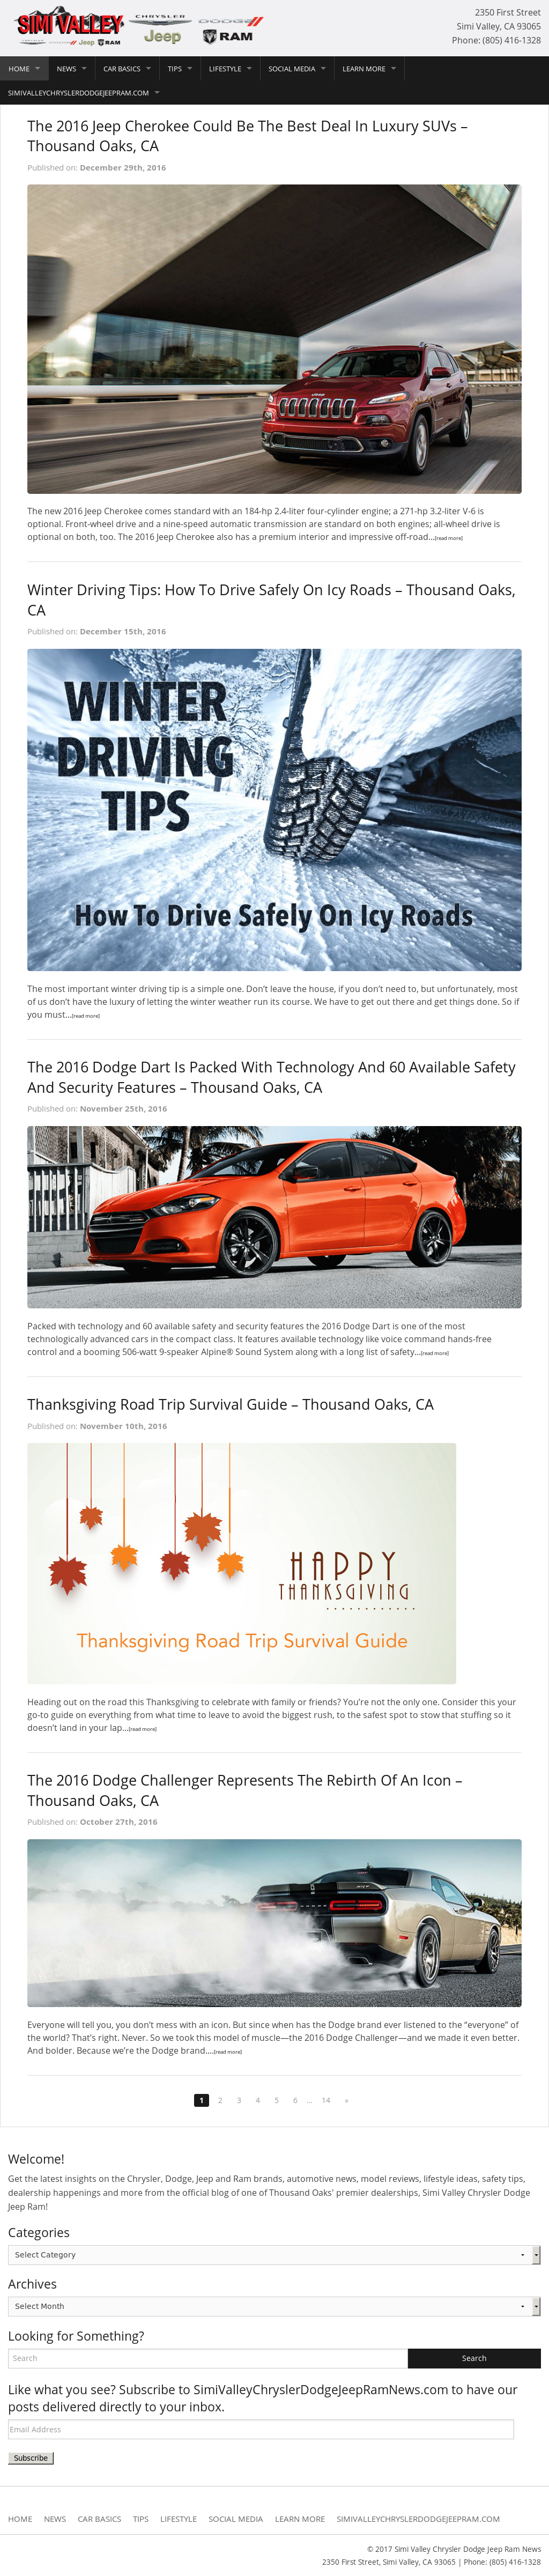 Simi Valley Dodge >> Simi Valley Chrysler Dodge Jeep Ram News Competitors